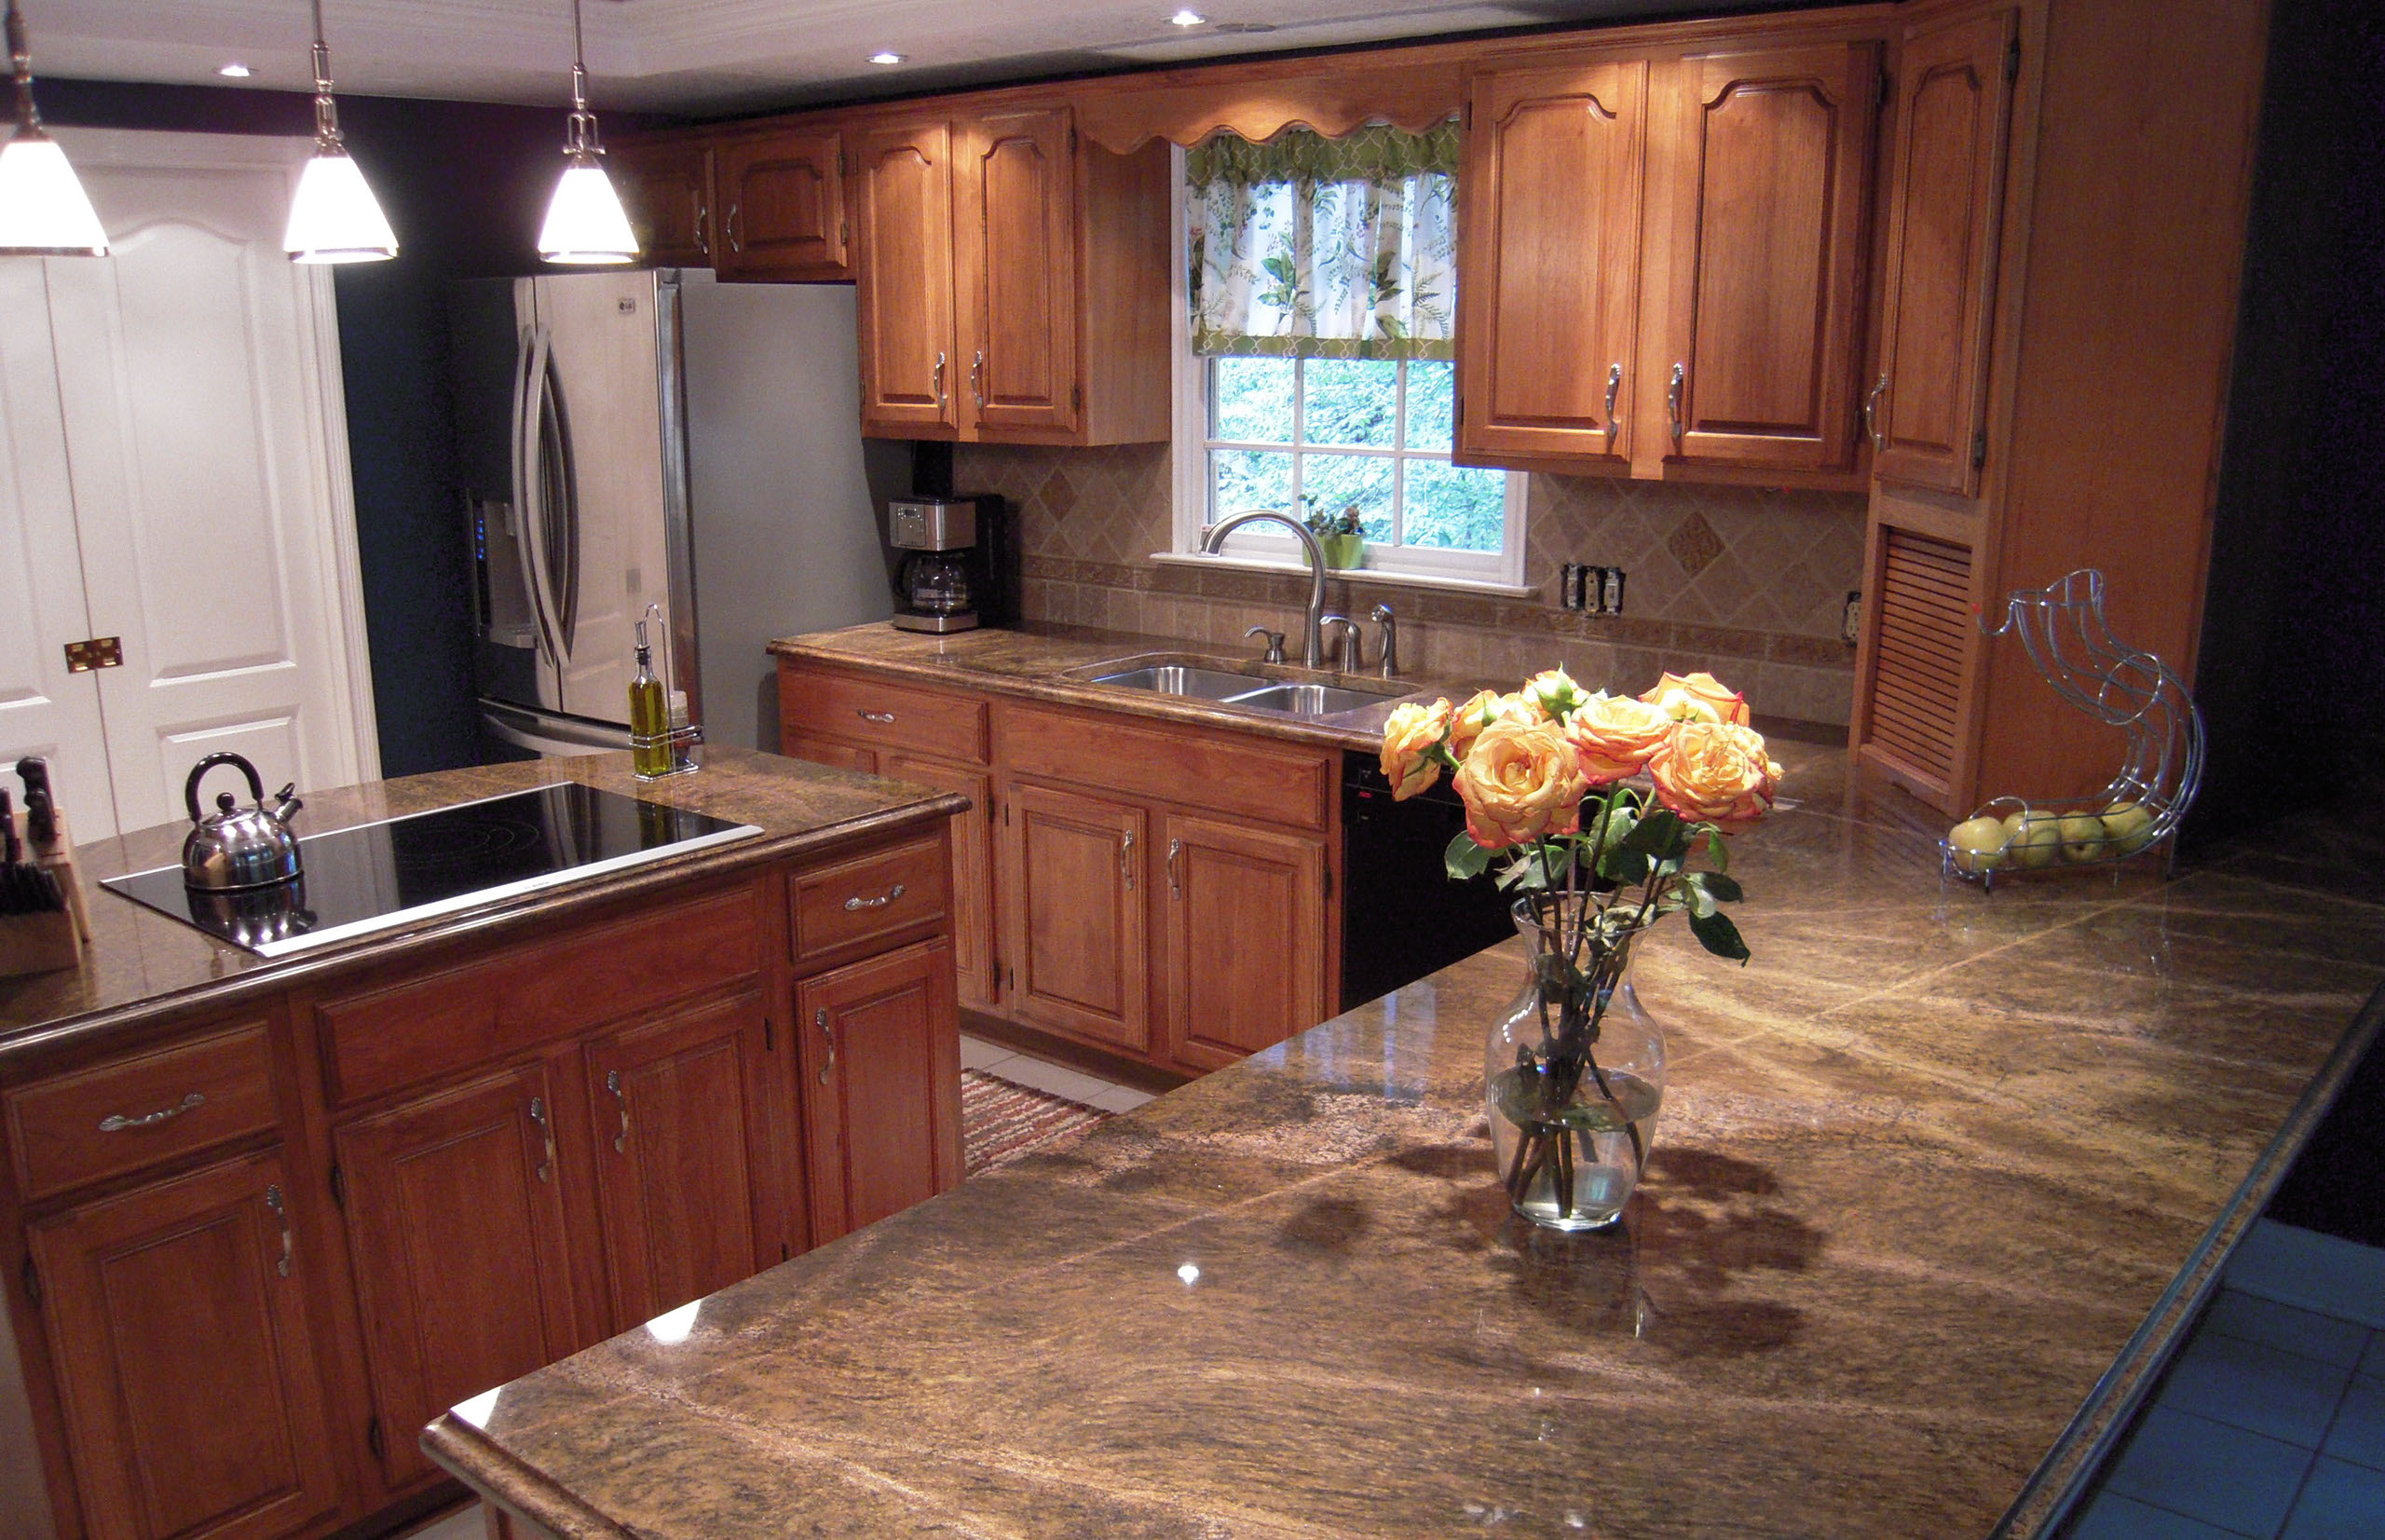 Maryville Marble And Granite Knoxville Countertops Kitchen Bathroom Quartz